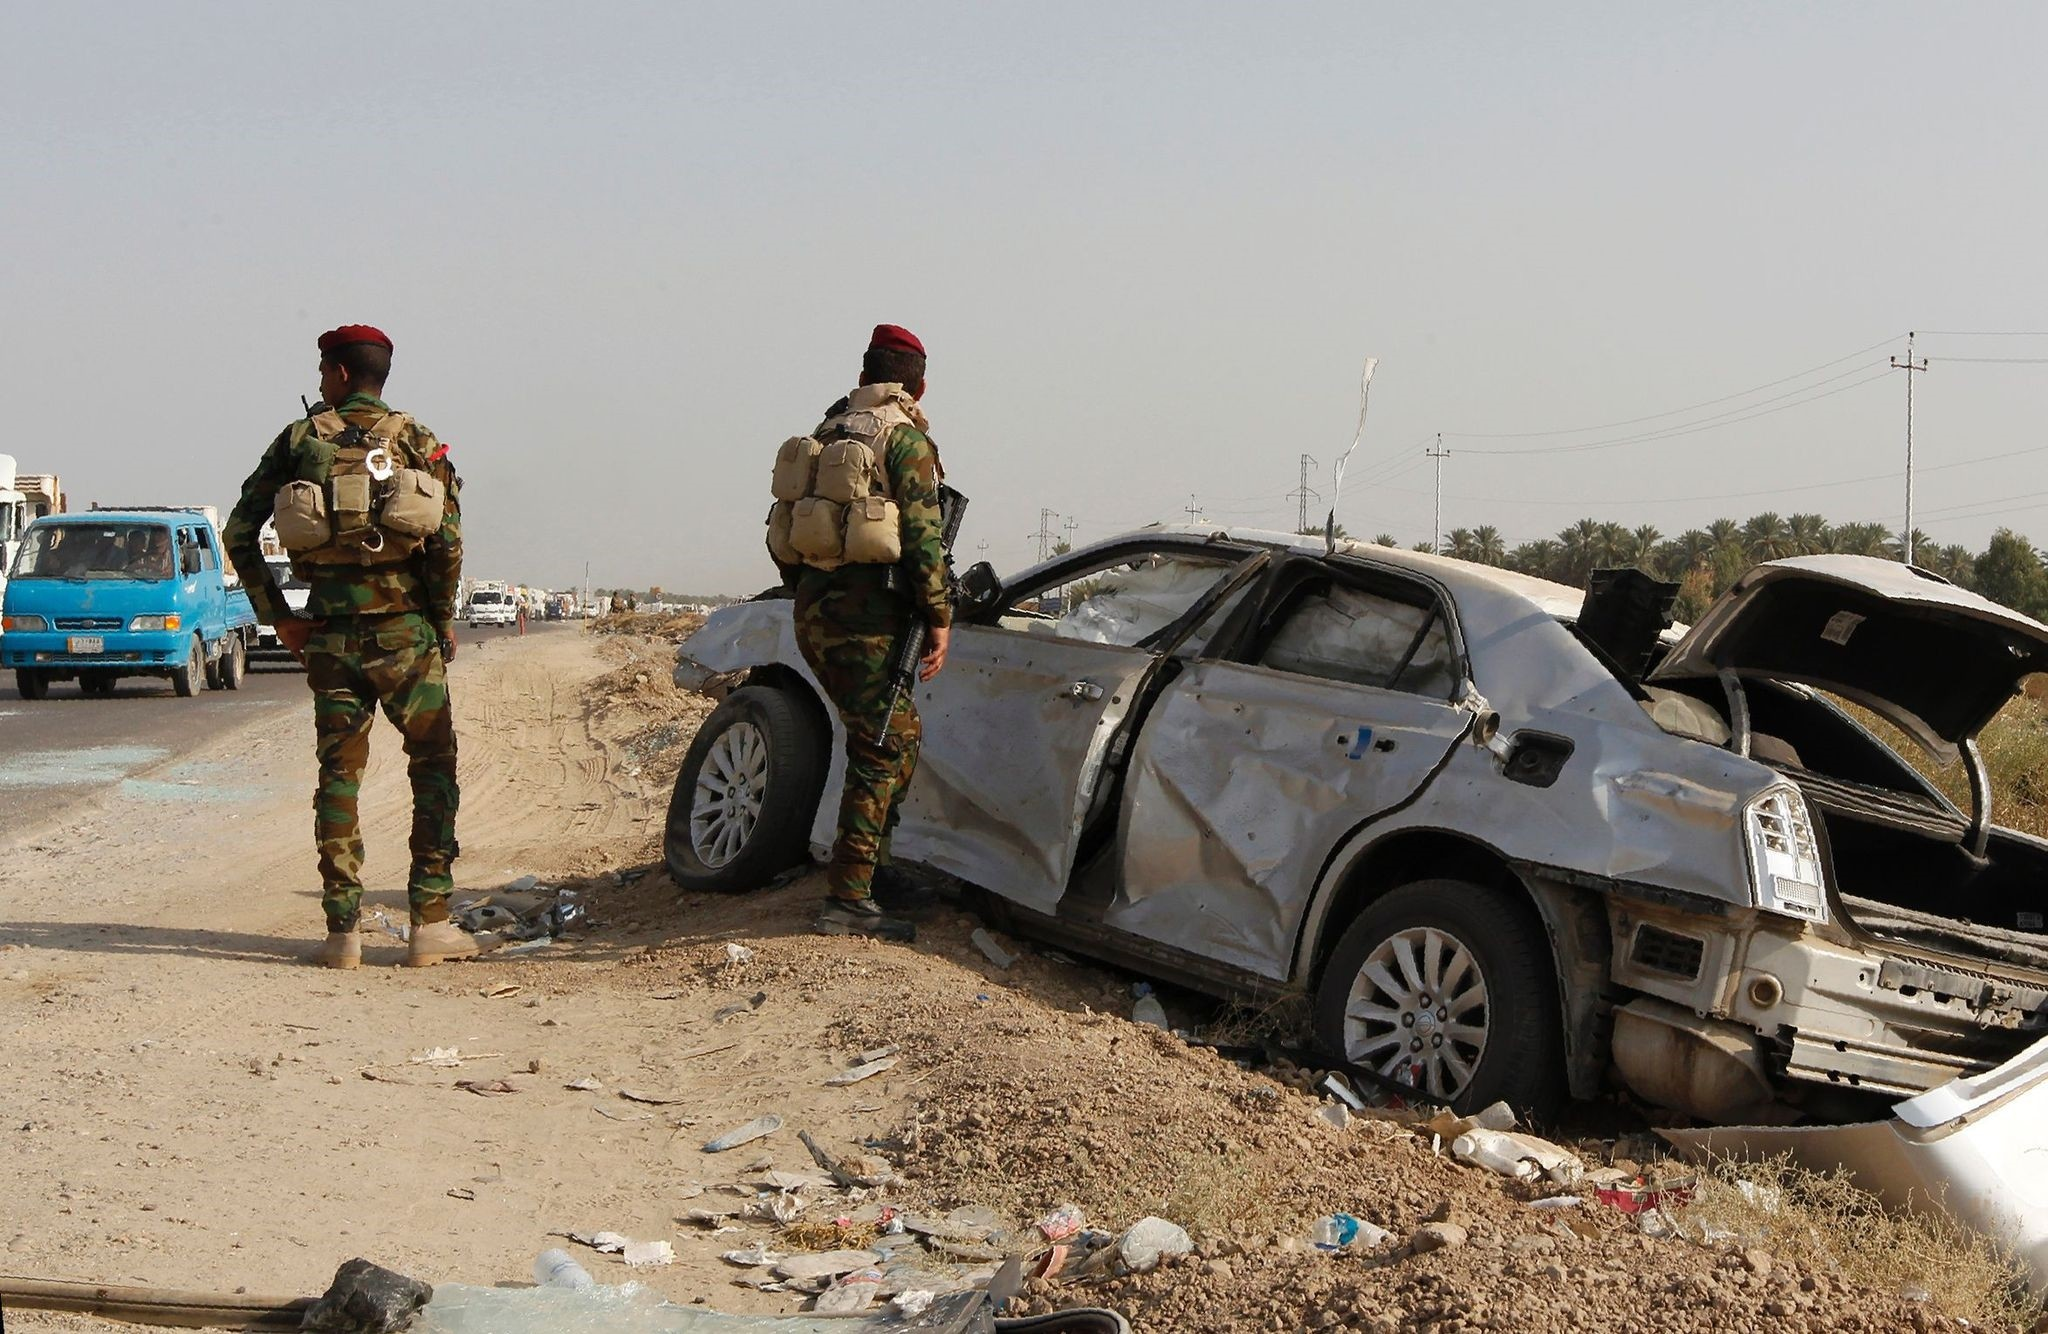 Iraqi government forces stand next to a damaged vehicle at the site of car bomb explosion targeting an Iraqi army checkpoint in Yusufiya, south of the capital Baghdad, on October 17, 2016. (AFP Photo)